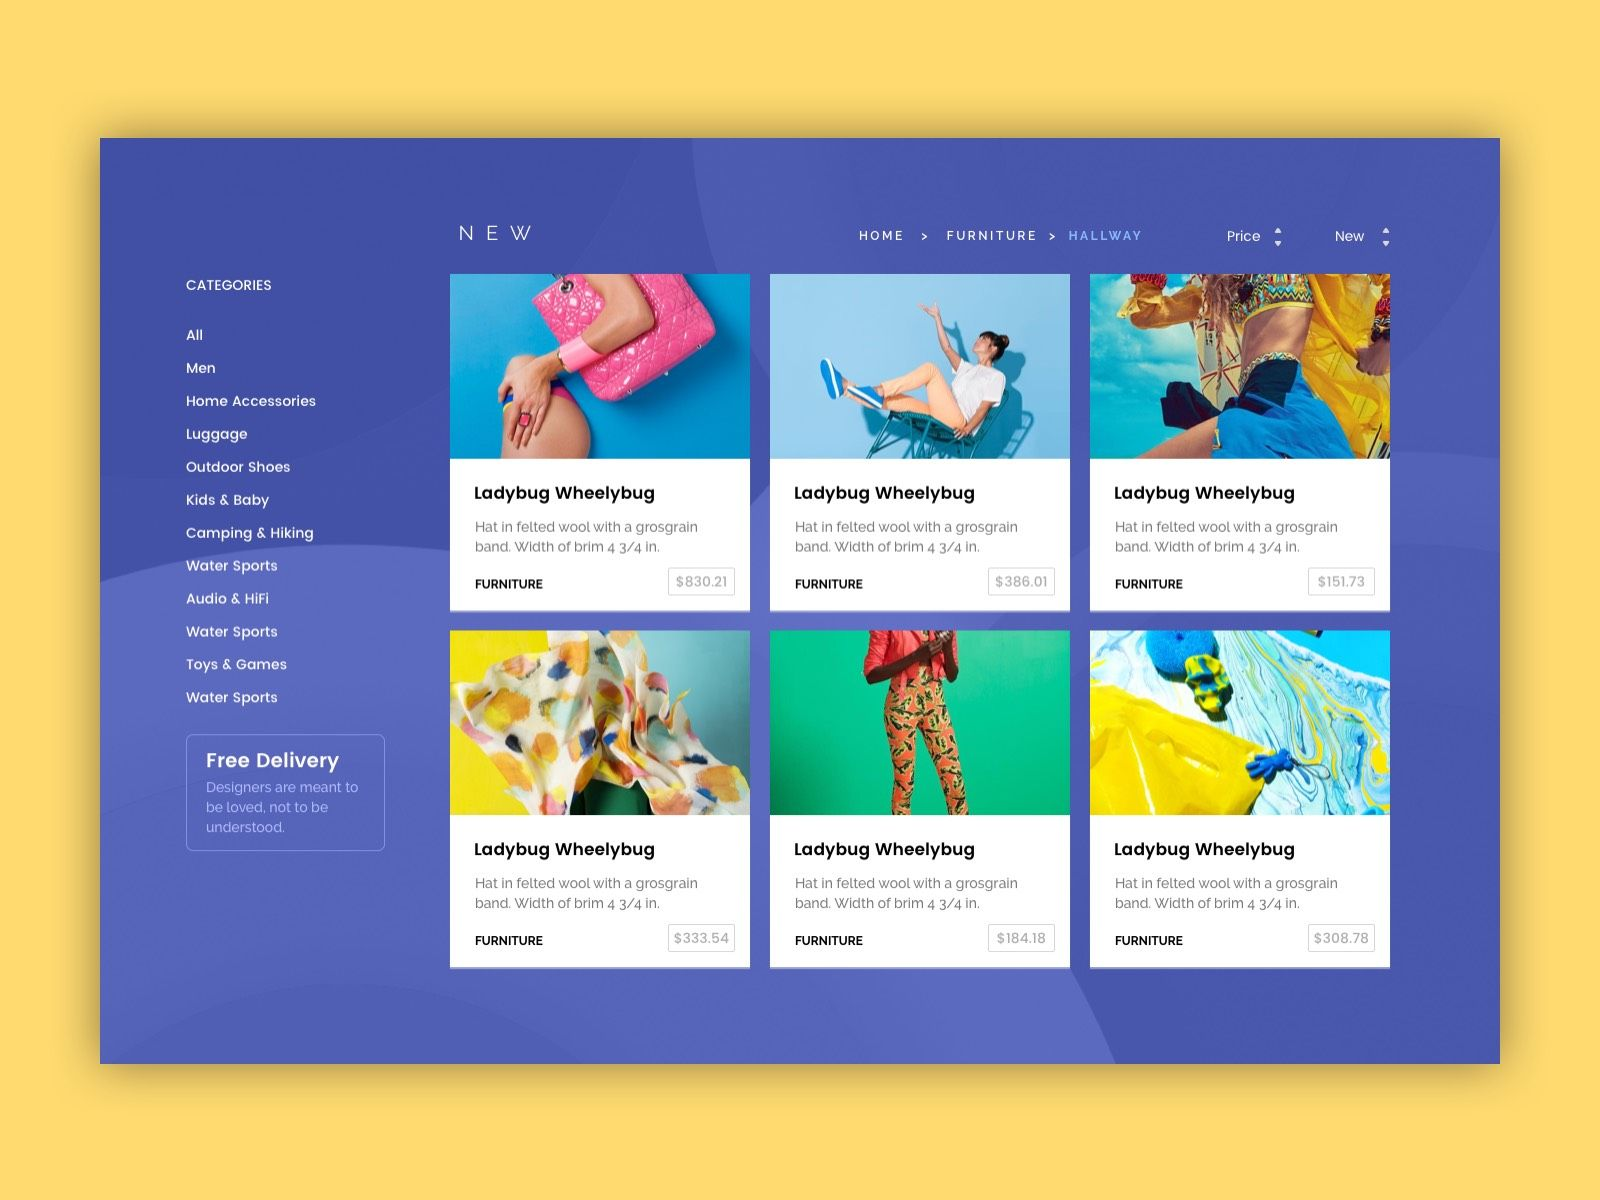 I really do enjoy surfing on Dribbble for inspiration, it's really a great platform to see what people are working on and possibly some of the latest trends in action.